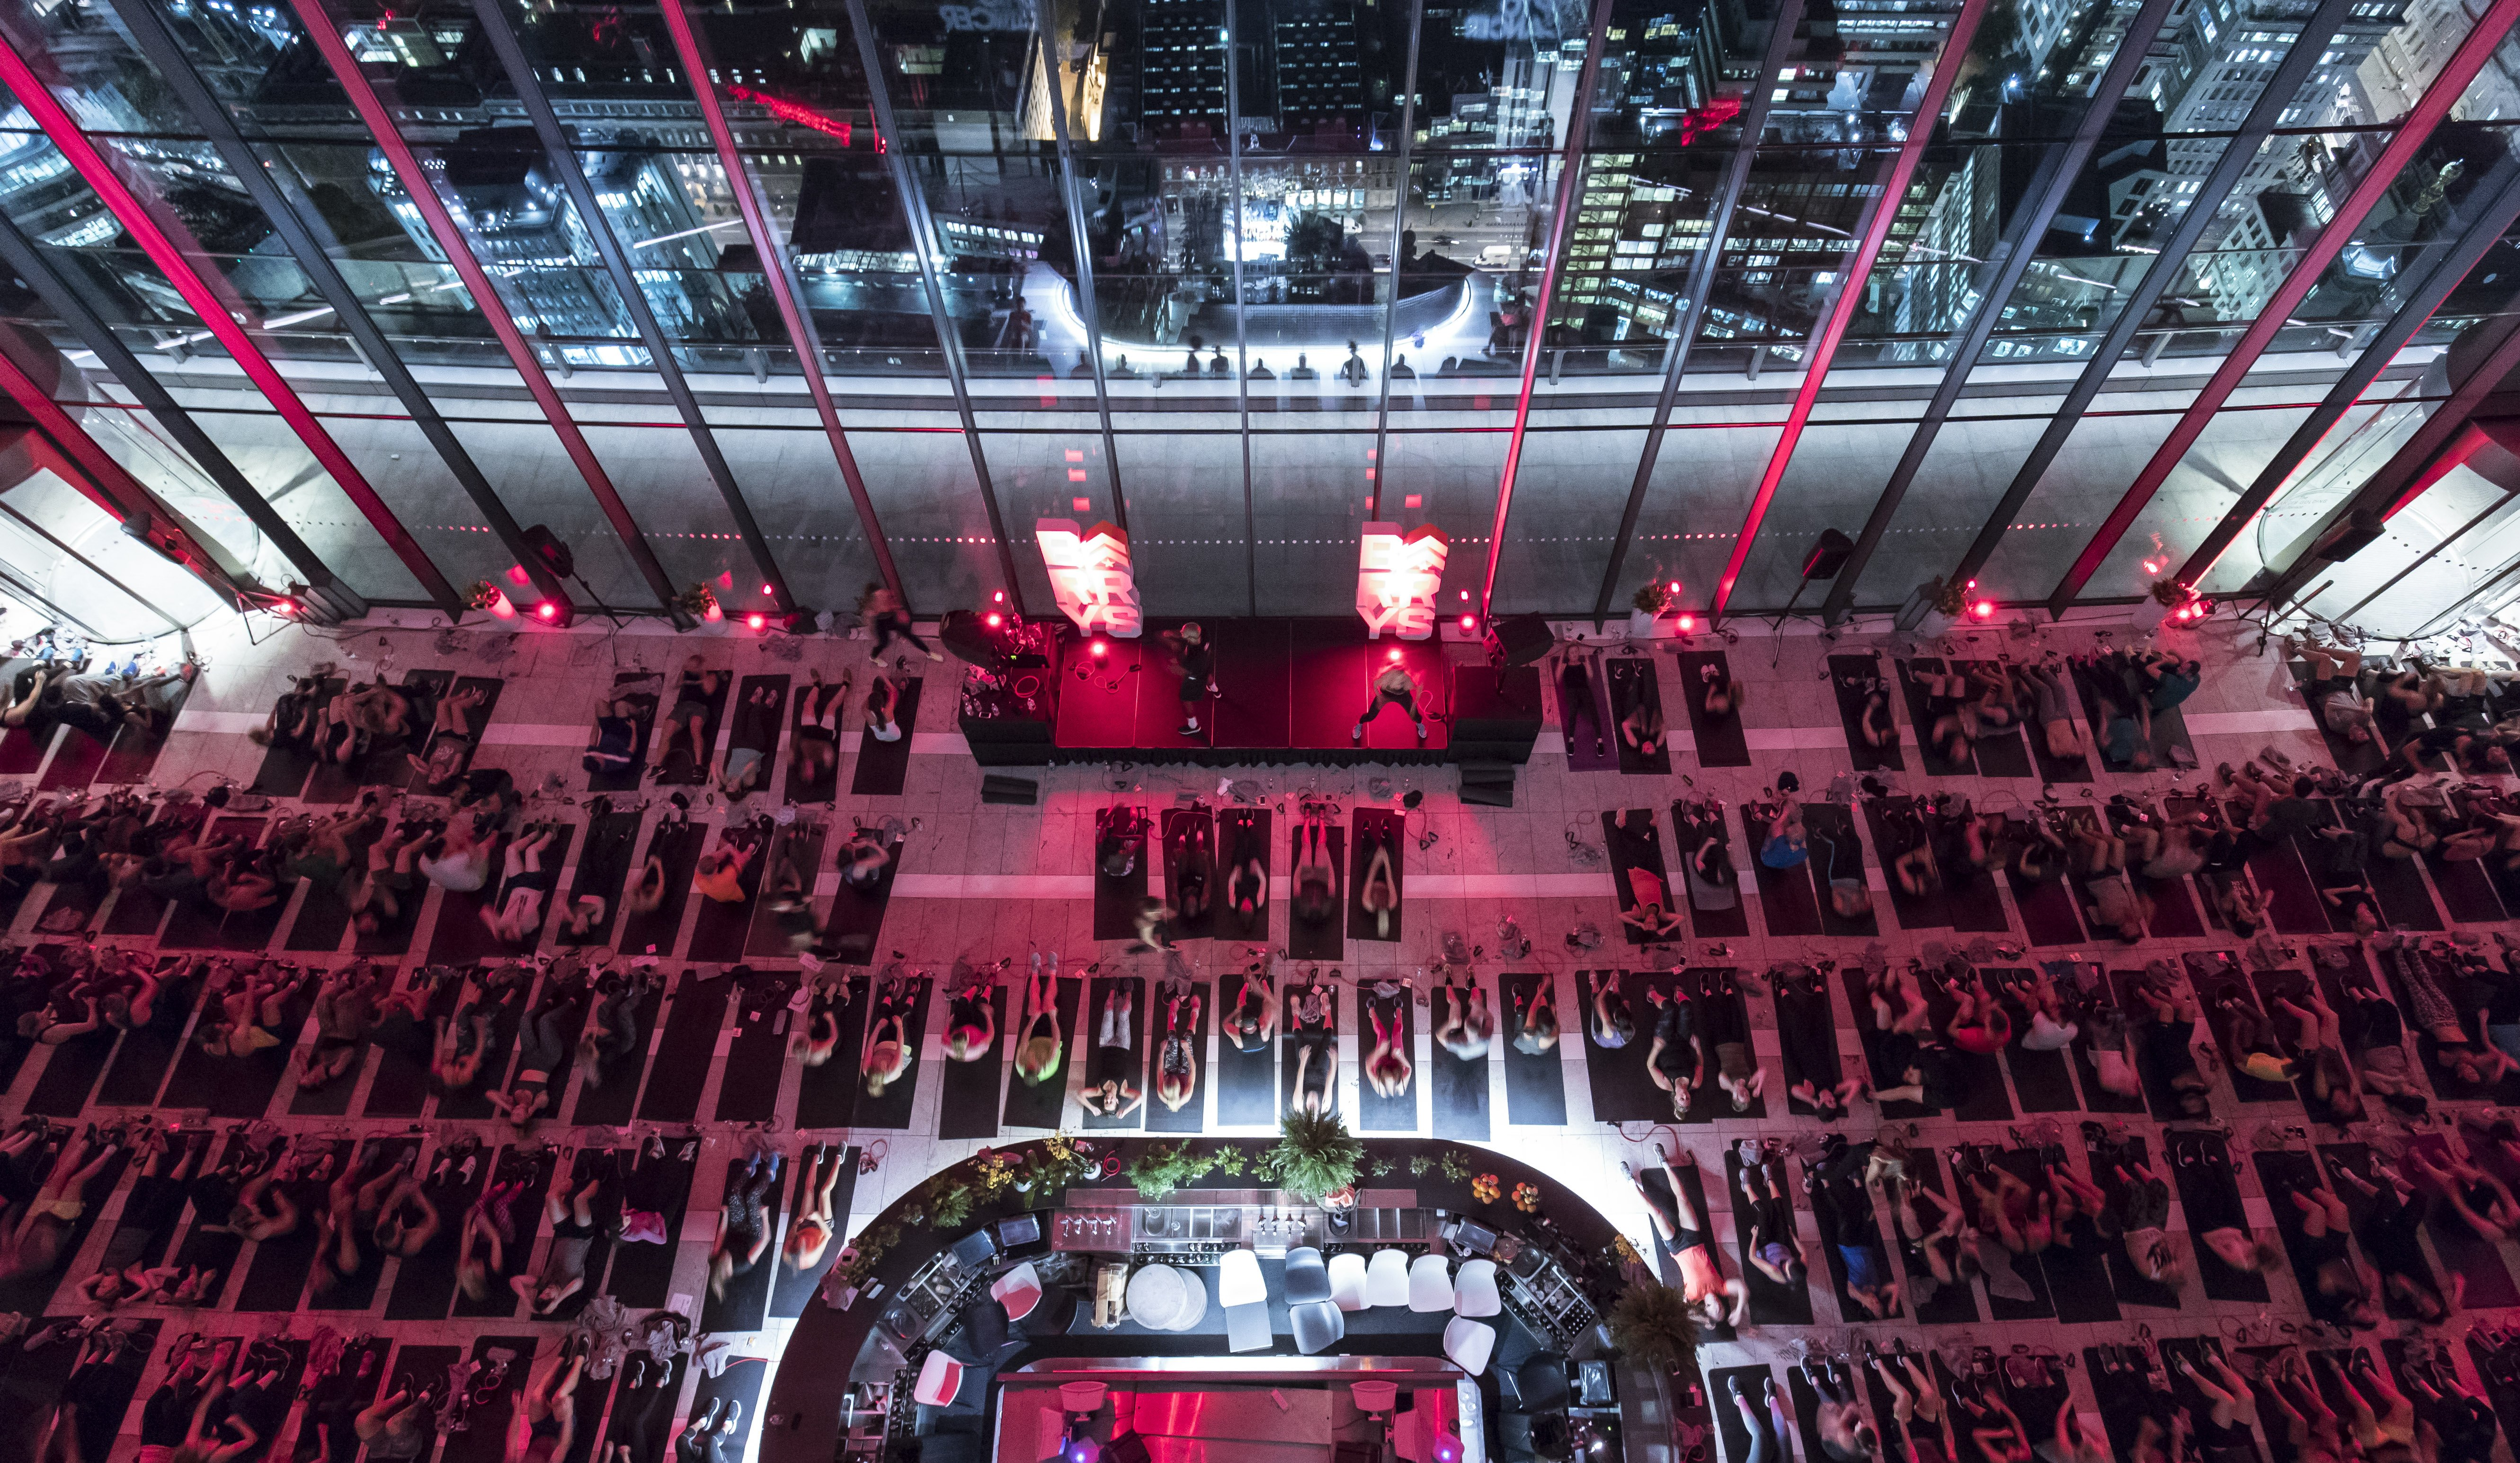 Overhead view of Barry's Bootcamp class at the London Sky Garden in front of red lights and large glass windows